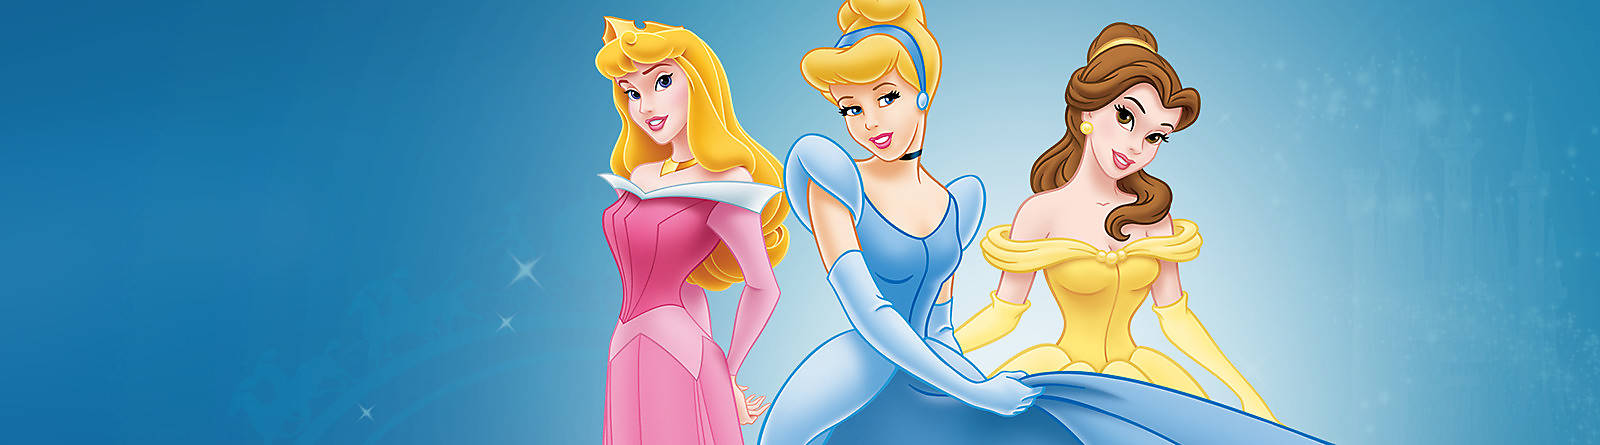 f26aae8b6e9a9 Disney Princess - Dolls, Costumes & Toys | shopDisney